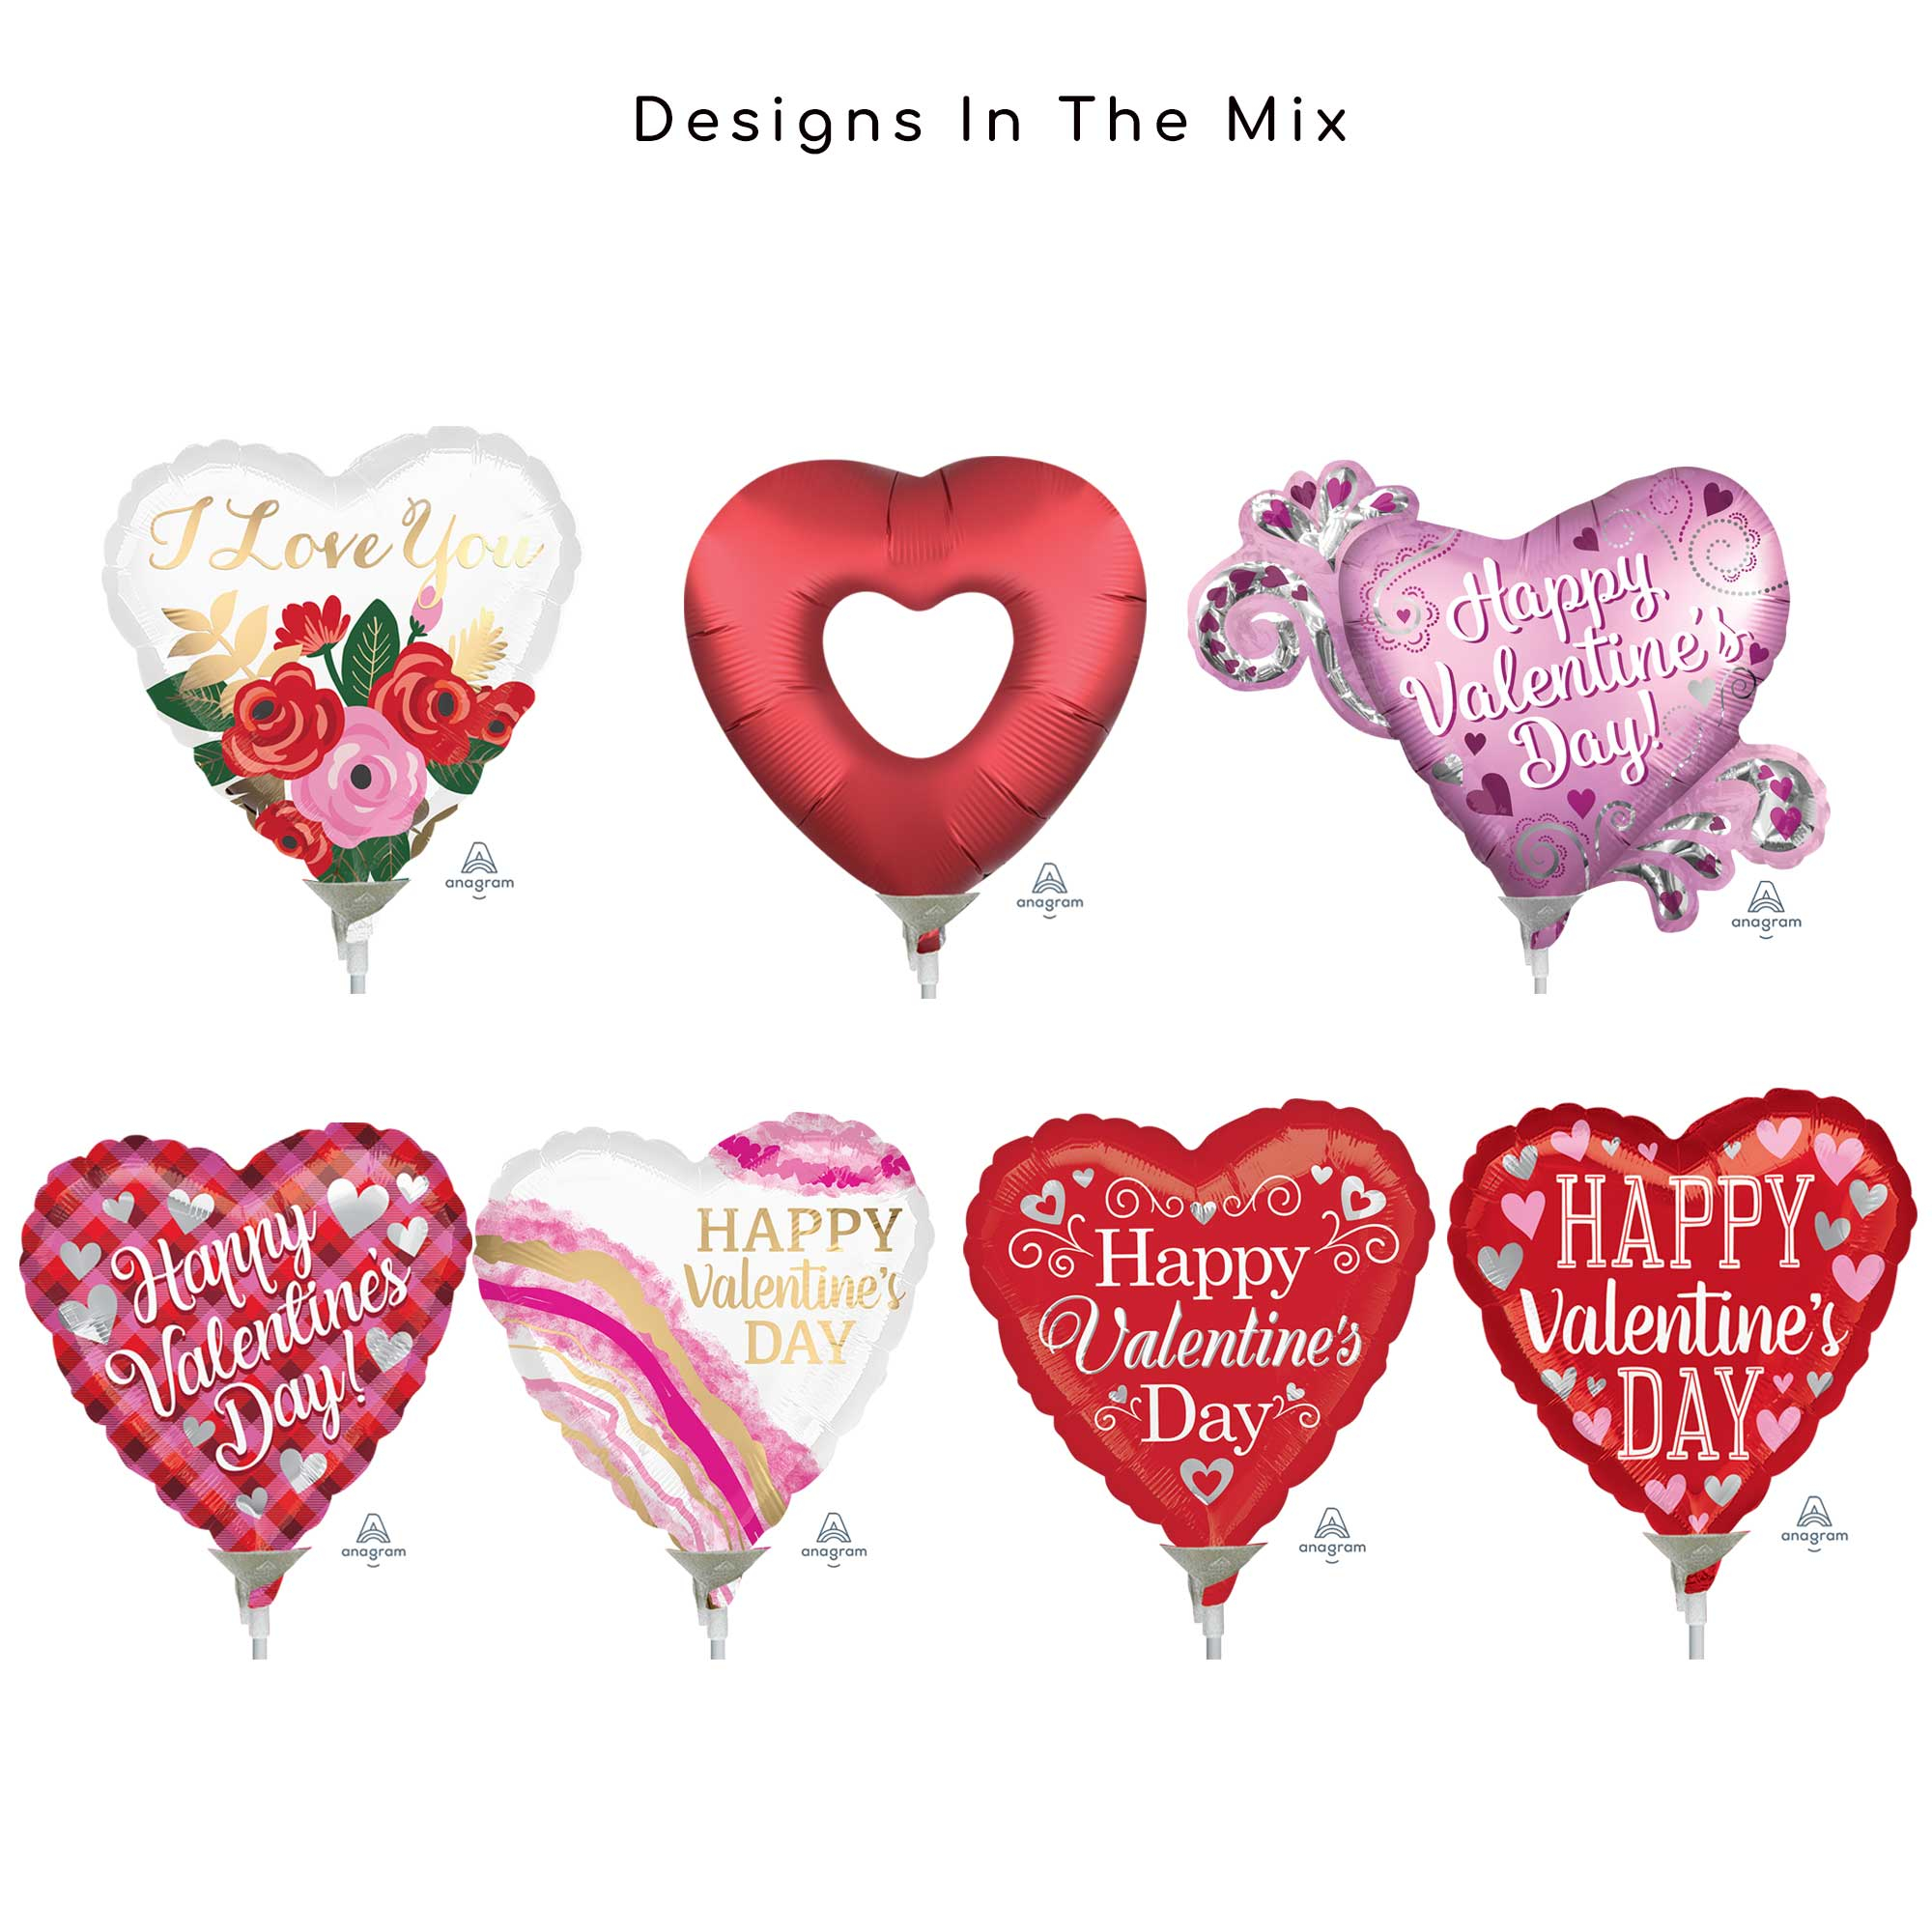 9in/23cm & Mini Shape - Valentines Foil Balloon Mix Contains 20 Balloons, pre-inflated with Sticks & Cups